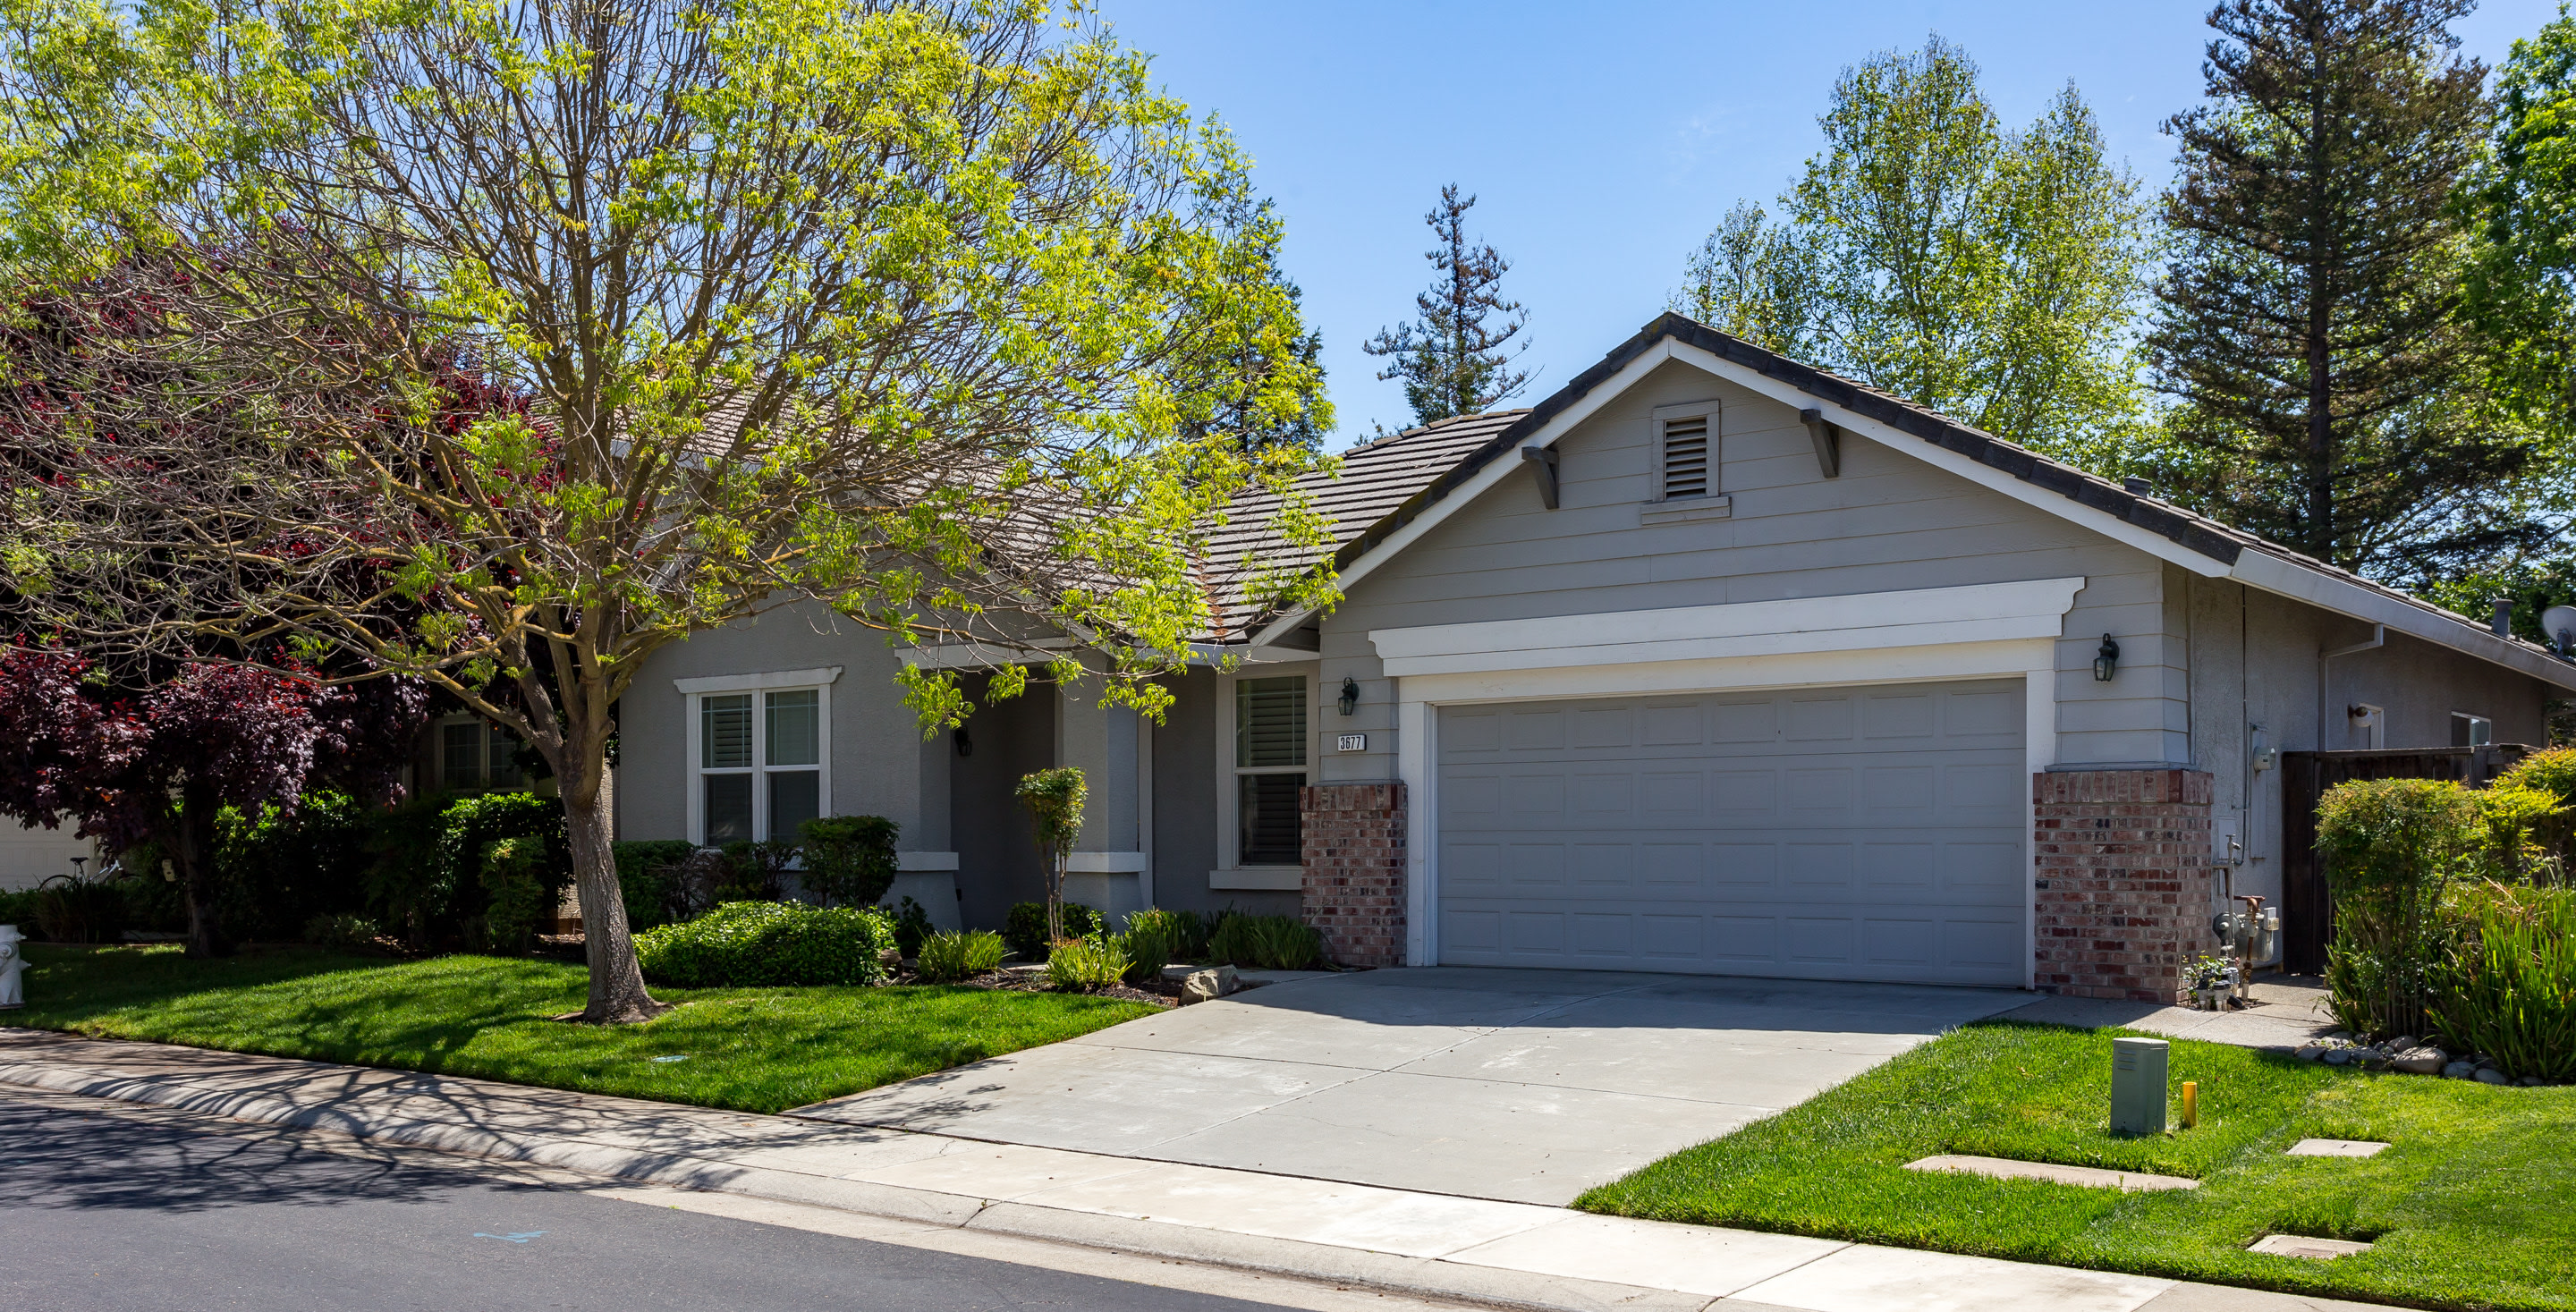 Admirable 20 Best Apartments In Elk Grove Ca With Pictures Download Free Architecture Designs Scobabritishbridgeorg